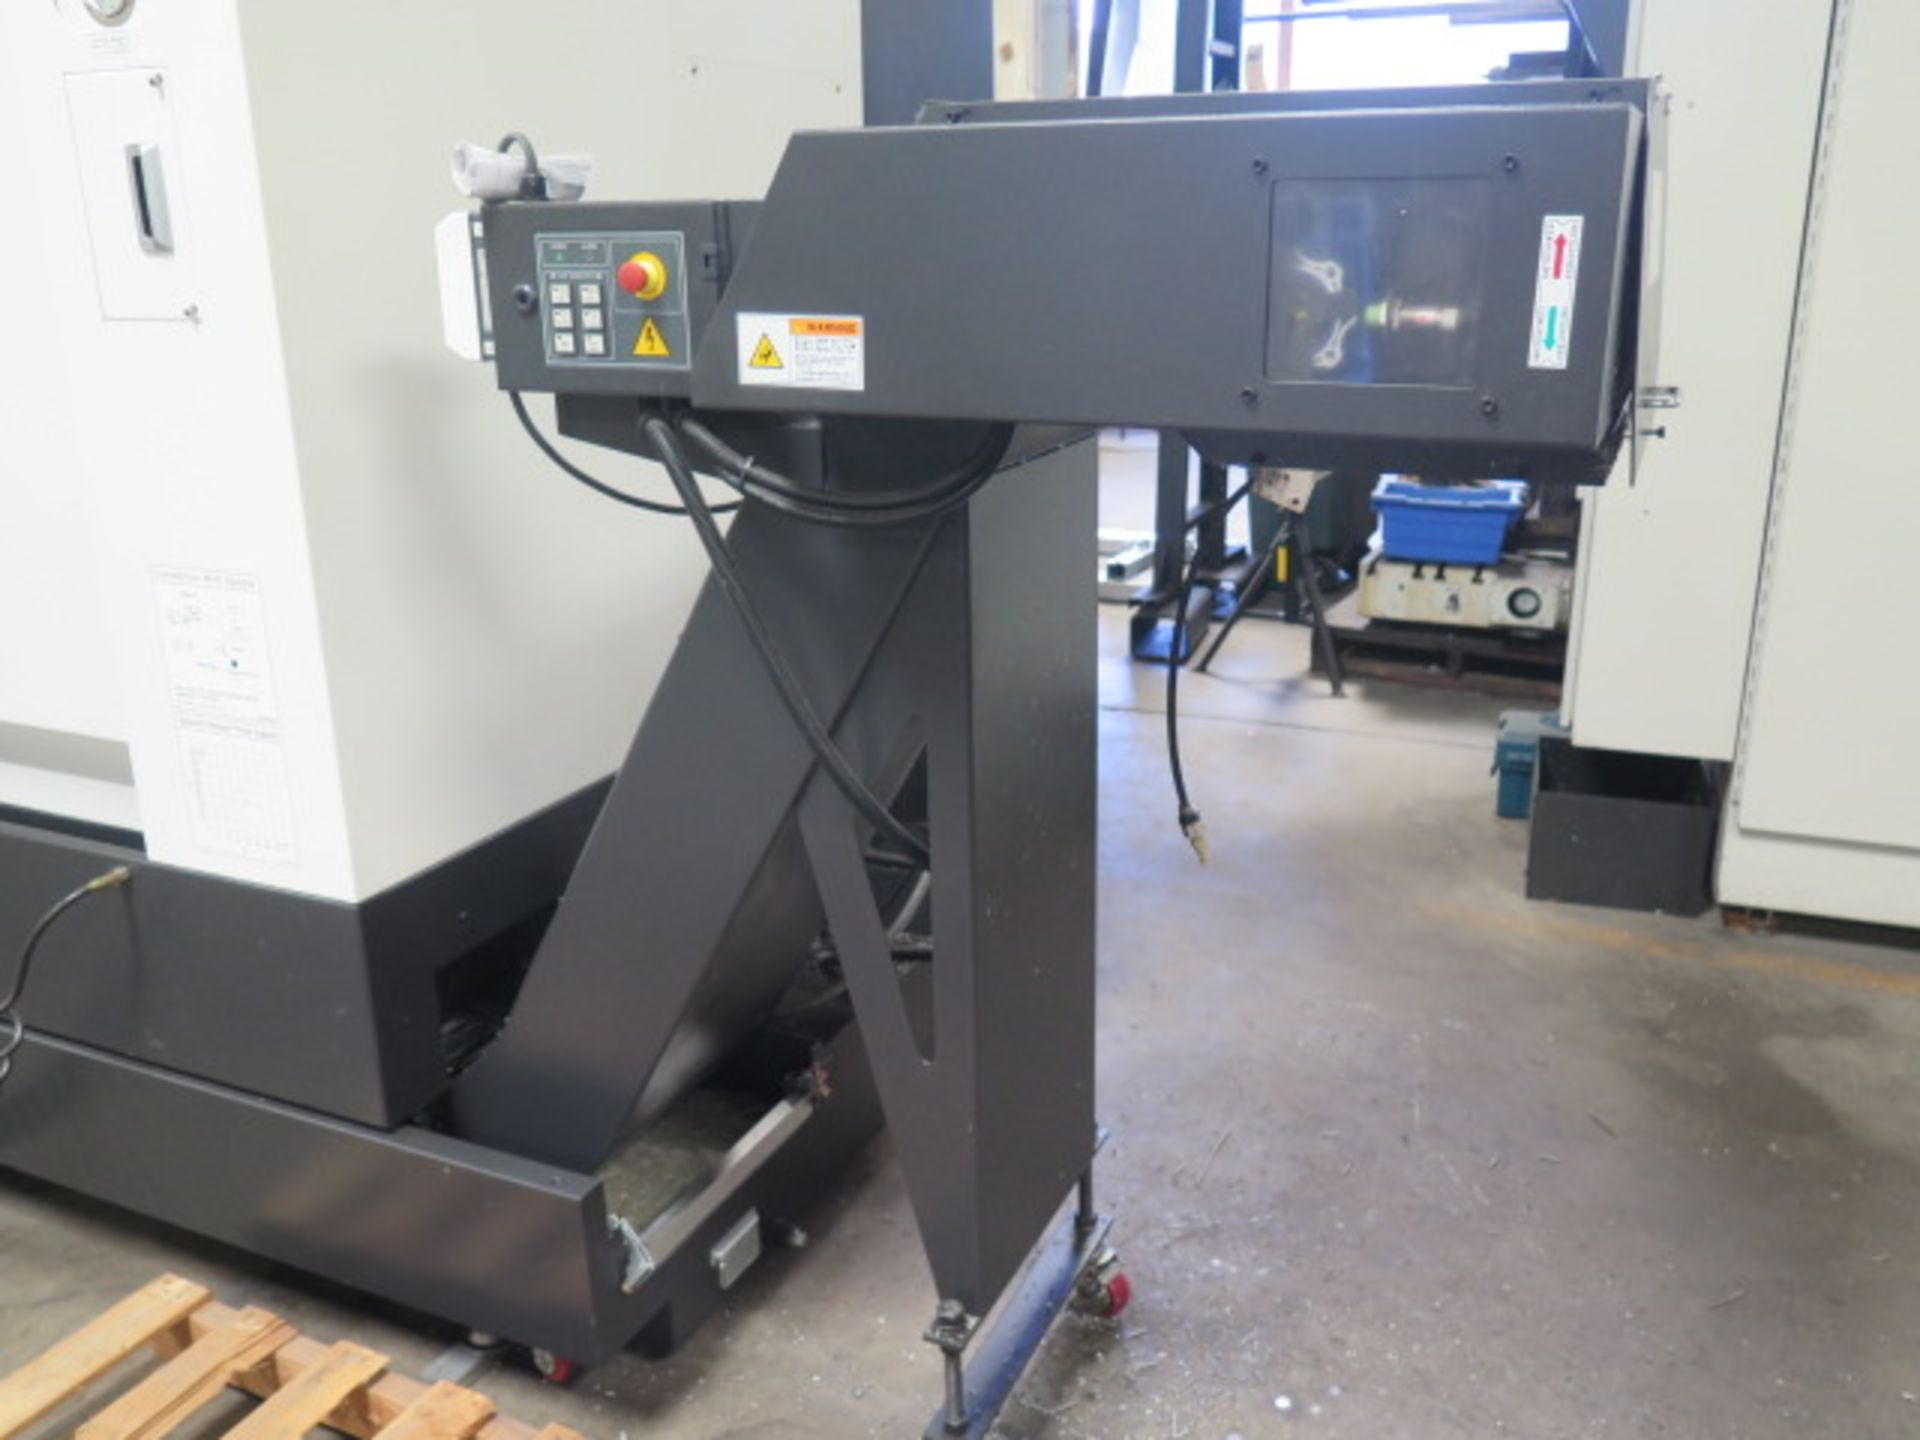 2017 Hyundai WIA L300LA CNC Turning Center s/n G3726-0108 w/ Fanuc i-Series Controls, SOLD AS IS - Image 13 of 18